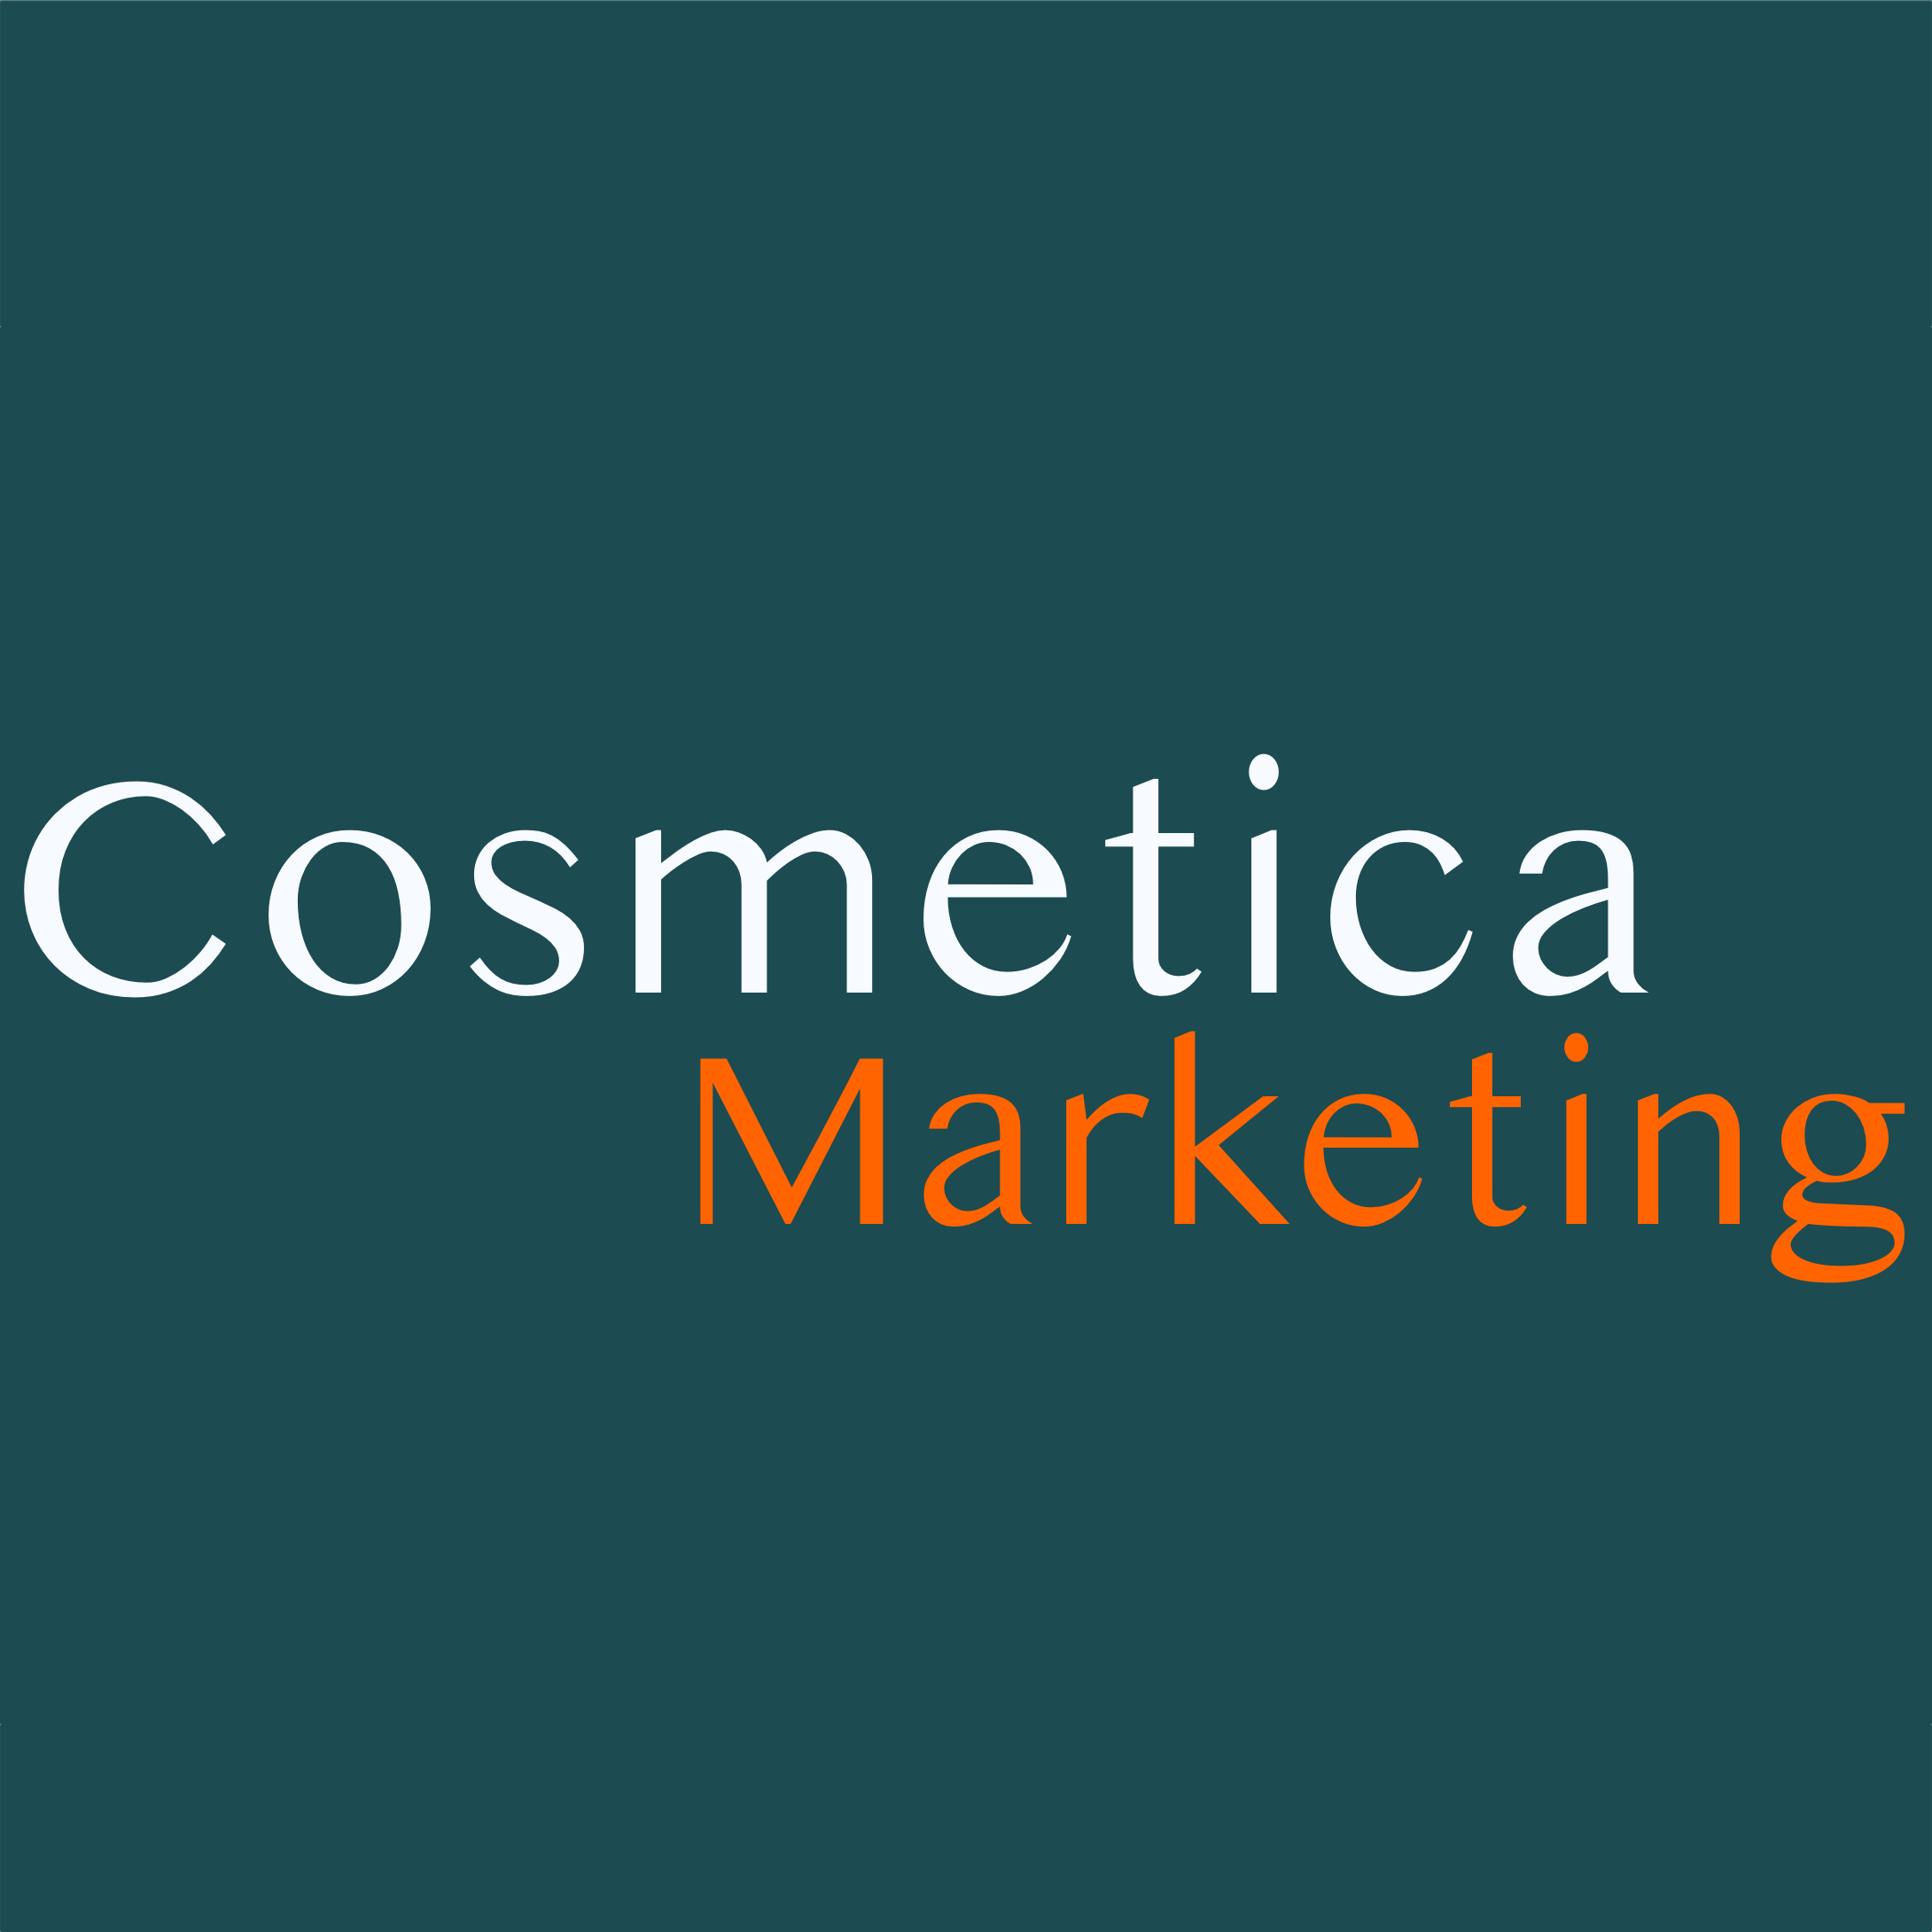 Cosmetica Marketing - Formazione Strategica sulla Digital Innovation per il settore Cosmesi